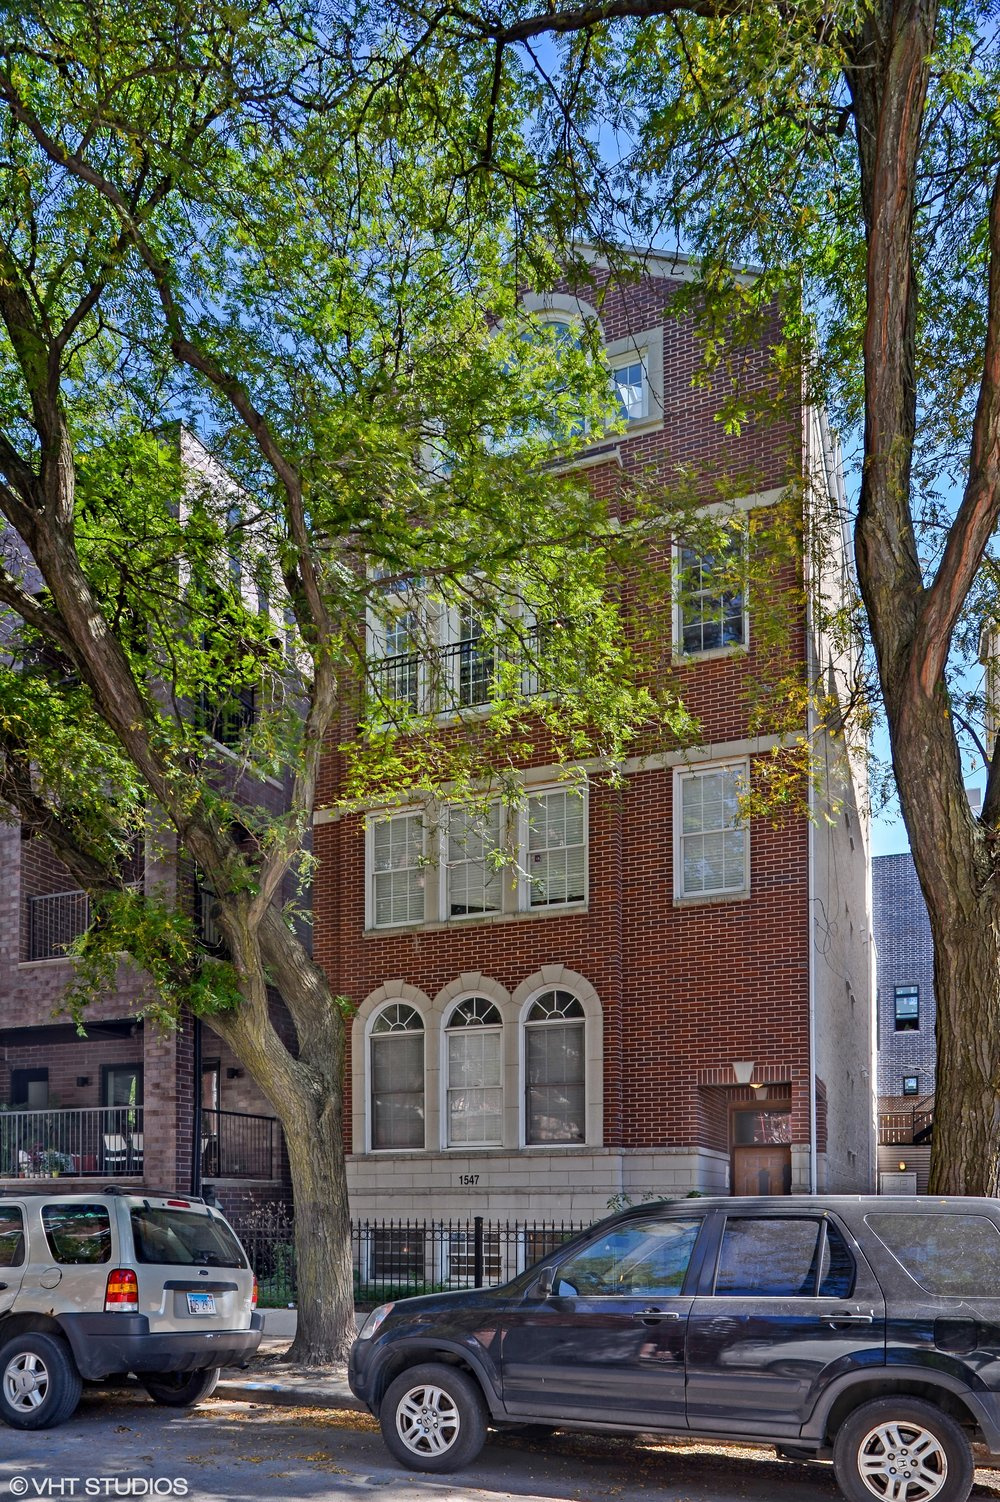 01_1547NorthNorthParkAve_G_57_FrontView_HiRes.jpg